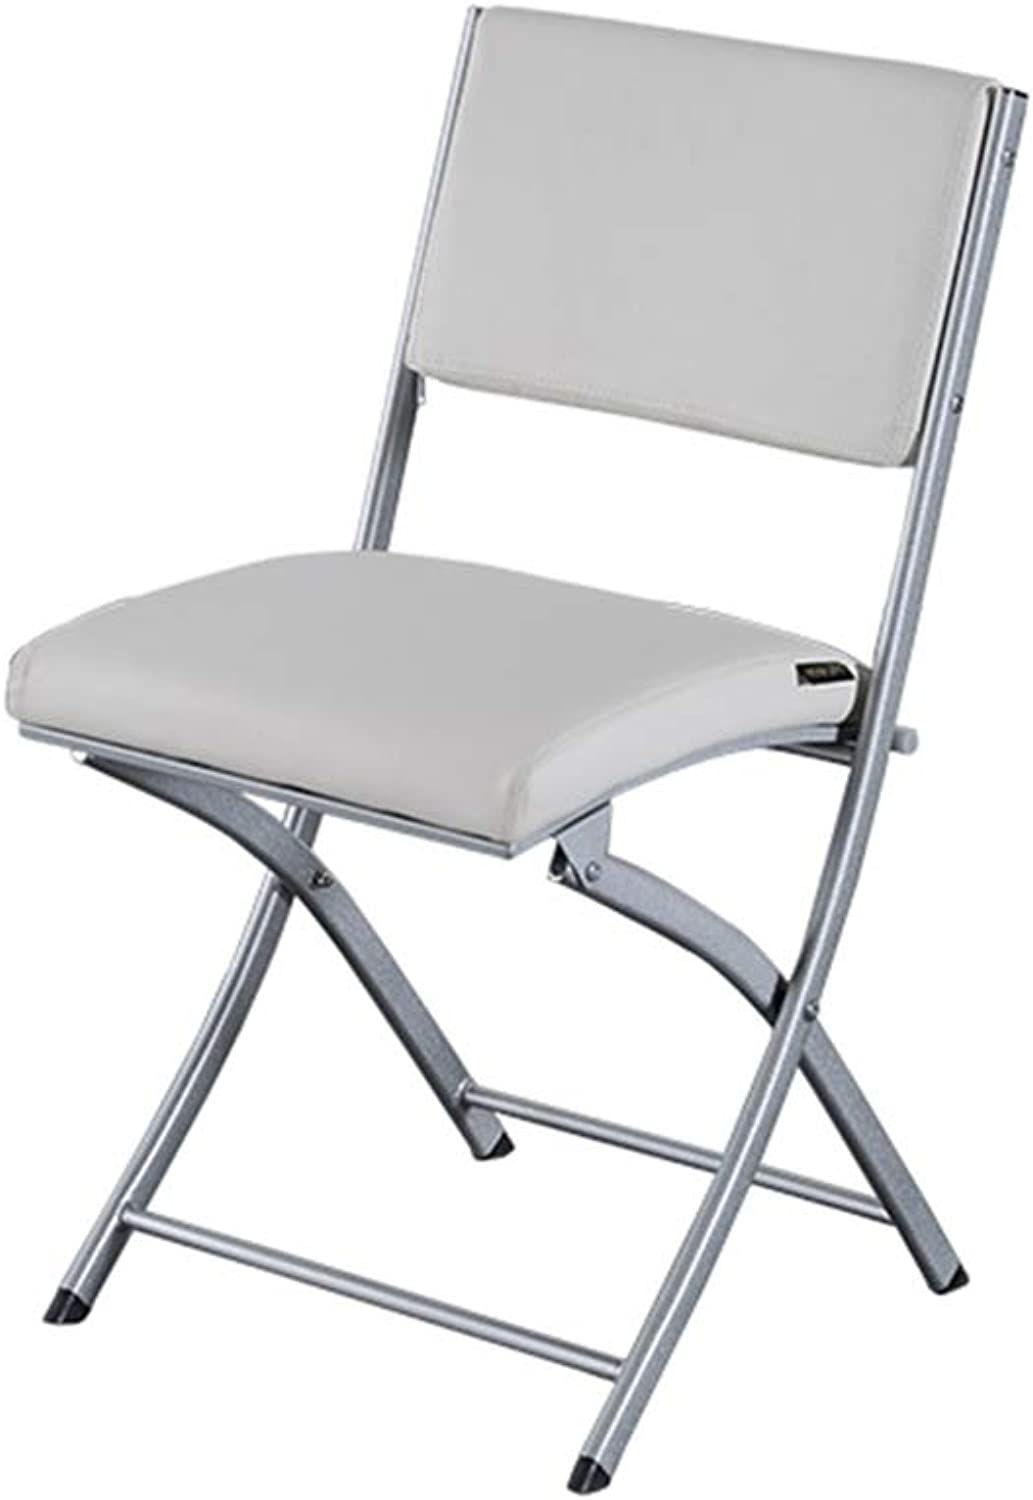 HPLL Folding Chair, Metal Folding Cipri Chair - Strong Steel Event Hall Seat fr Temporary Seat for Guests and Desk Kitchen Folding Chair (color   E, Size   49X43X82cm)